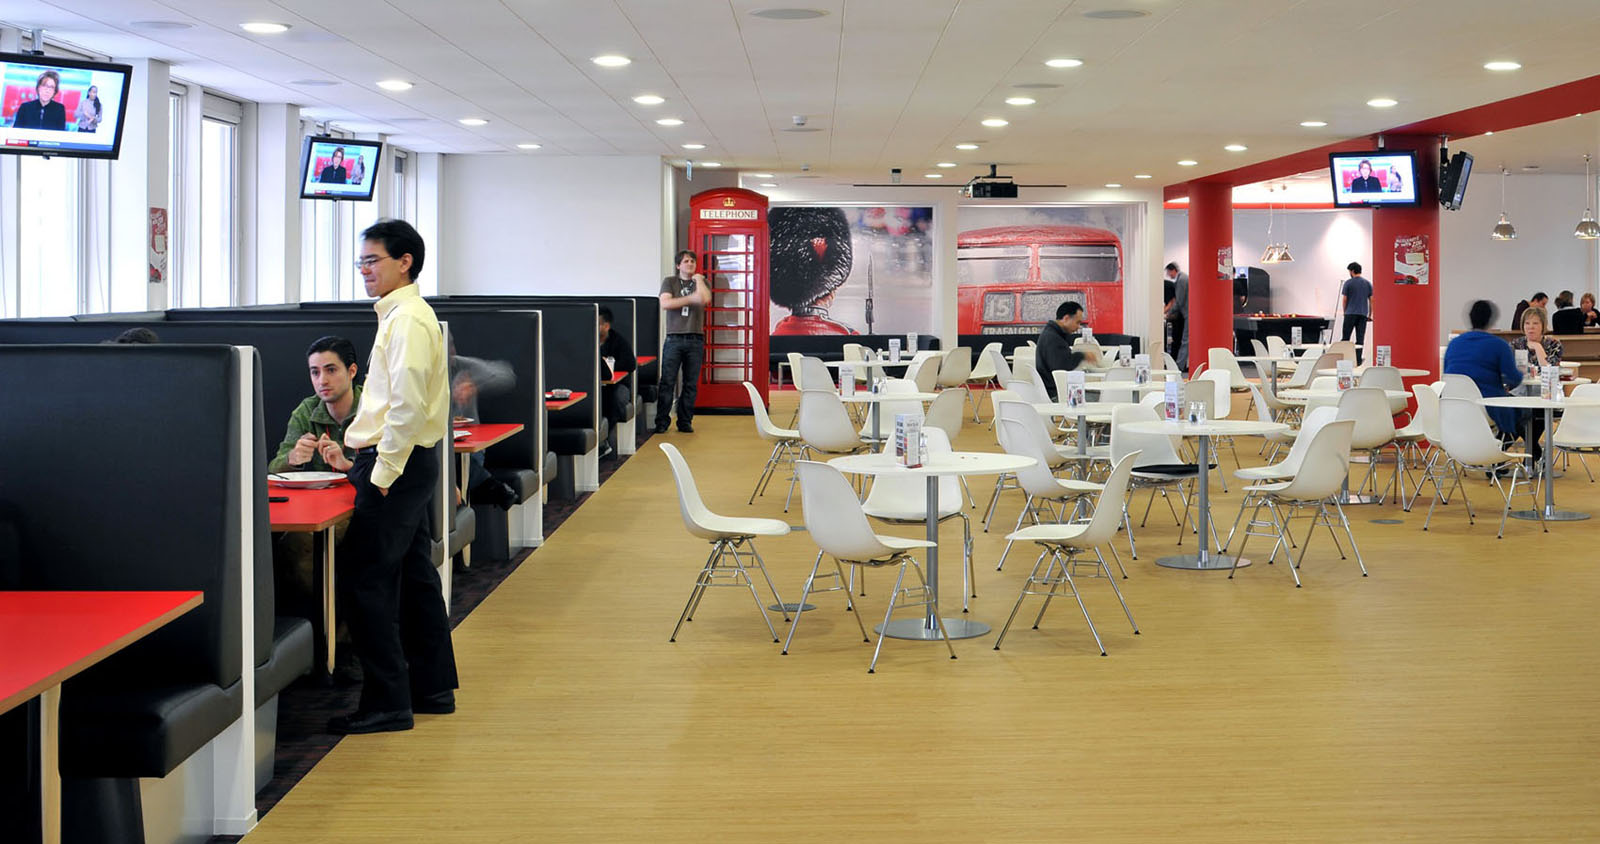 Inspiring British Office Interior Design At Rackspace